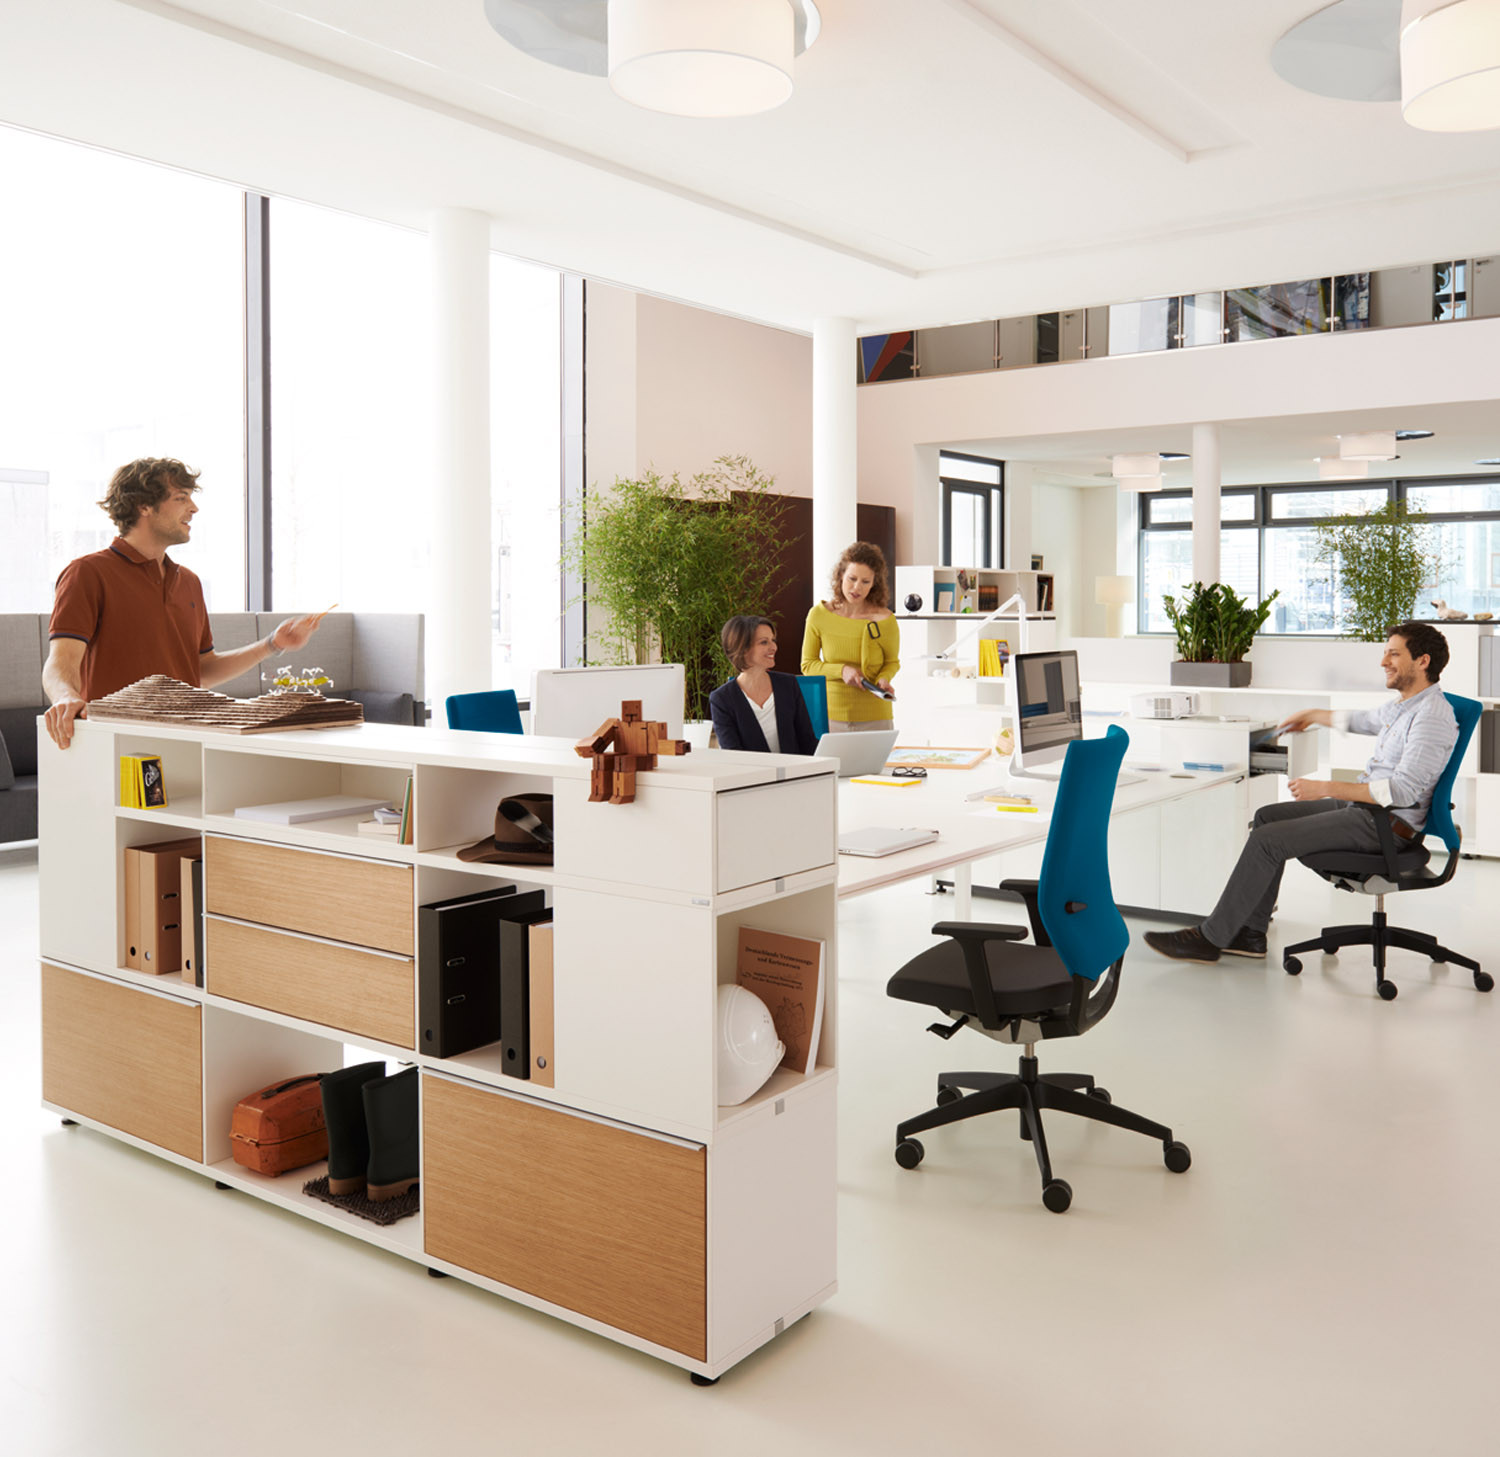 Quarterback Office Task Chairs from Sedus